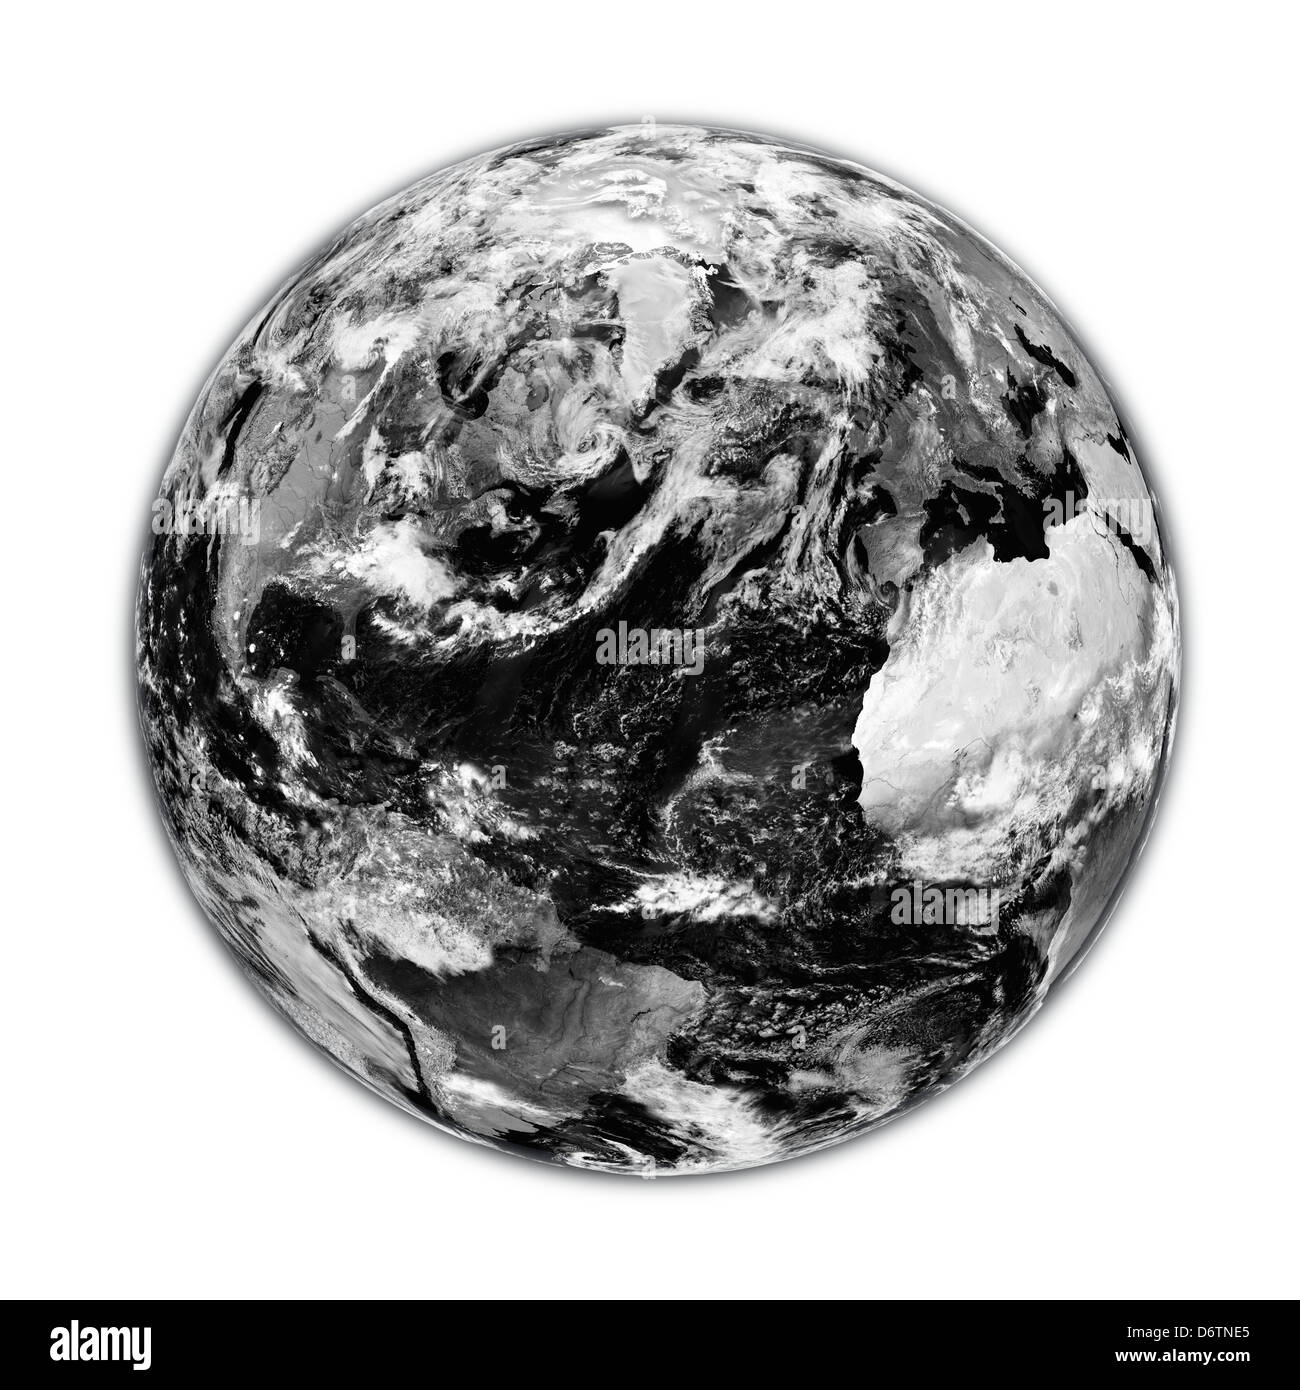 Black planet Earth with clouds isolated on white background. Elements of this image furnished by NASA. - Stock Image